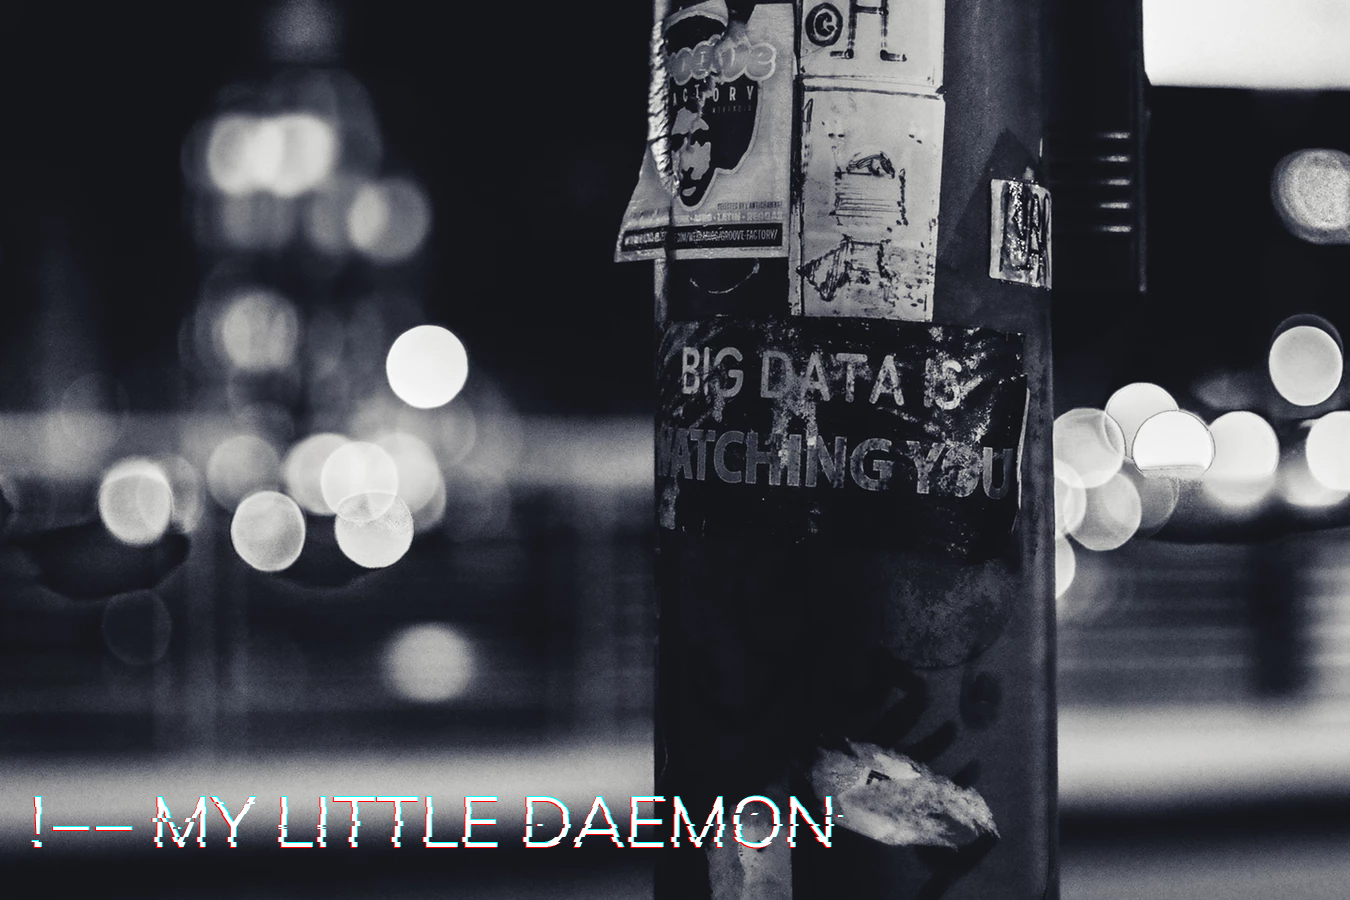 My Little Daemon